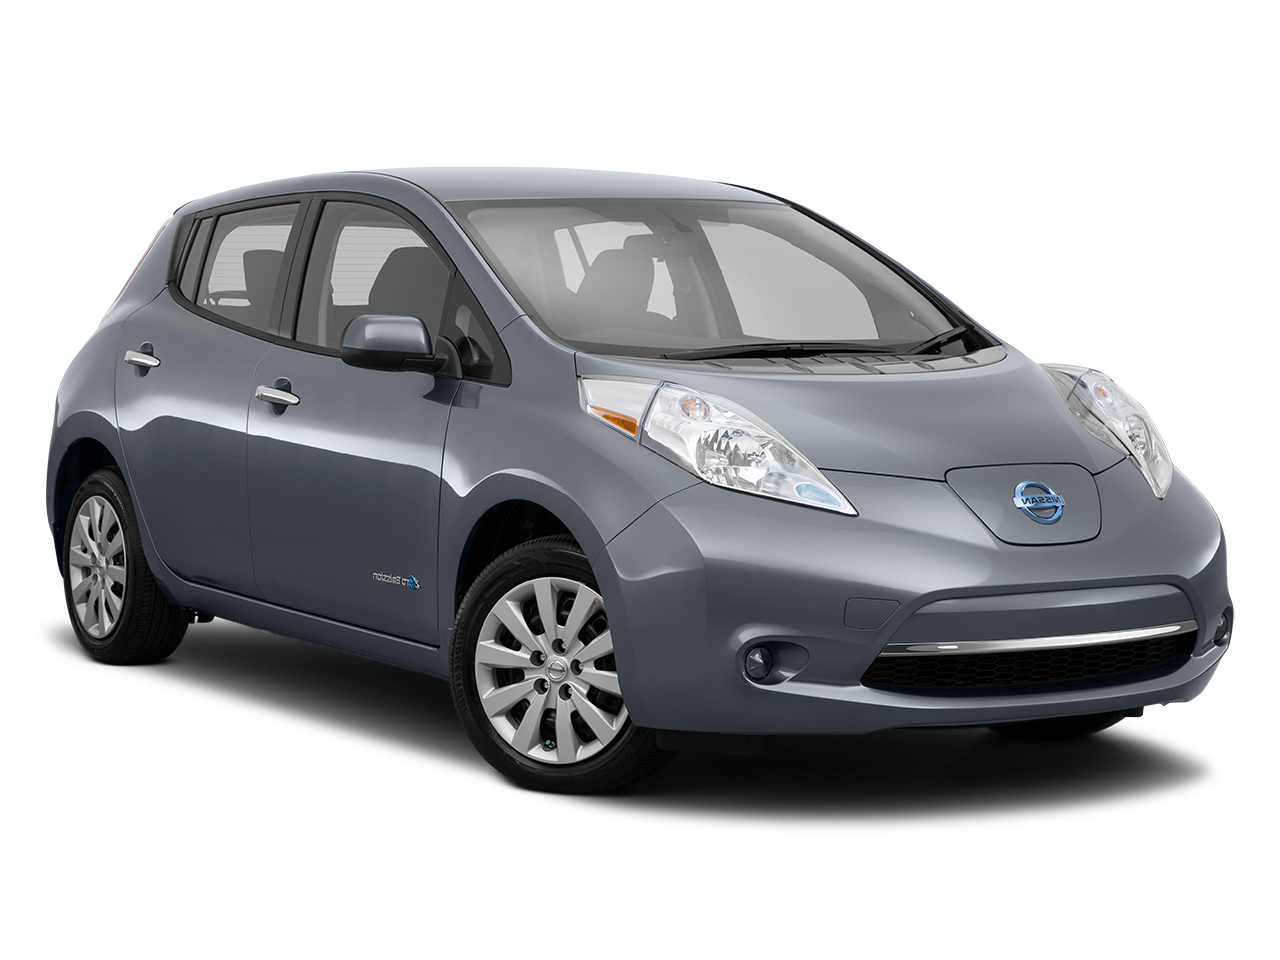 new 2016 nissan leaf lease offers and best prices quirk nissan. Black Bedroom Furniture Sets. Home Design Ideas